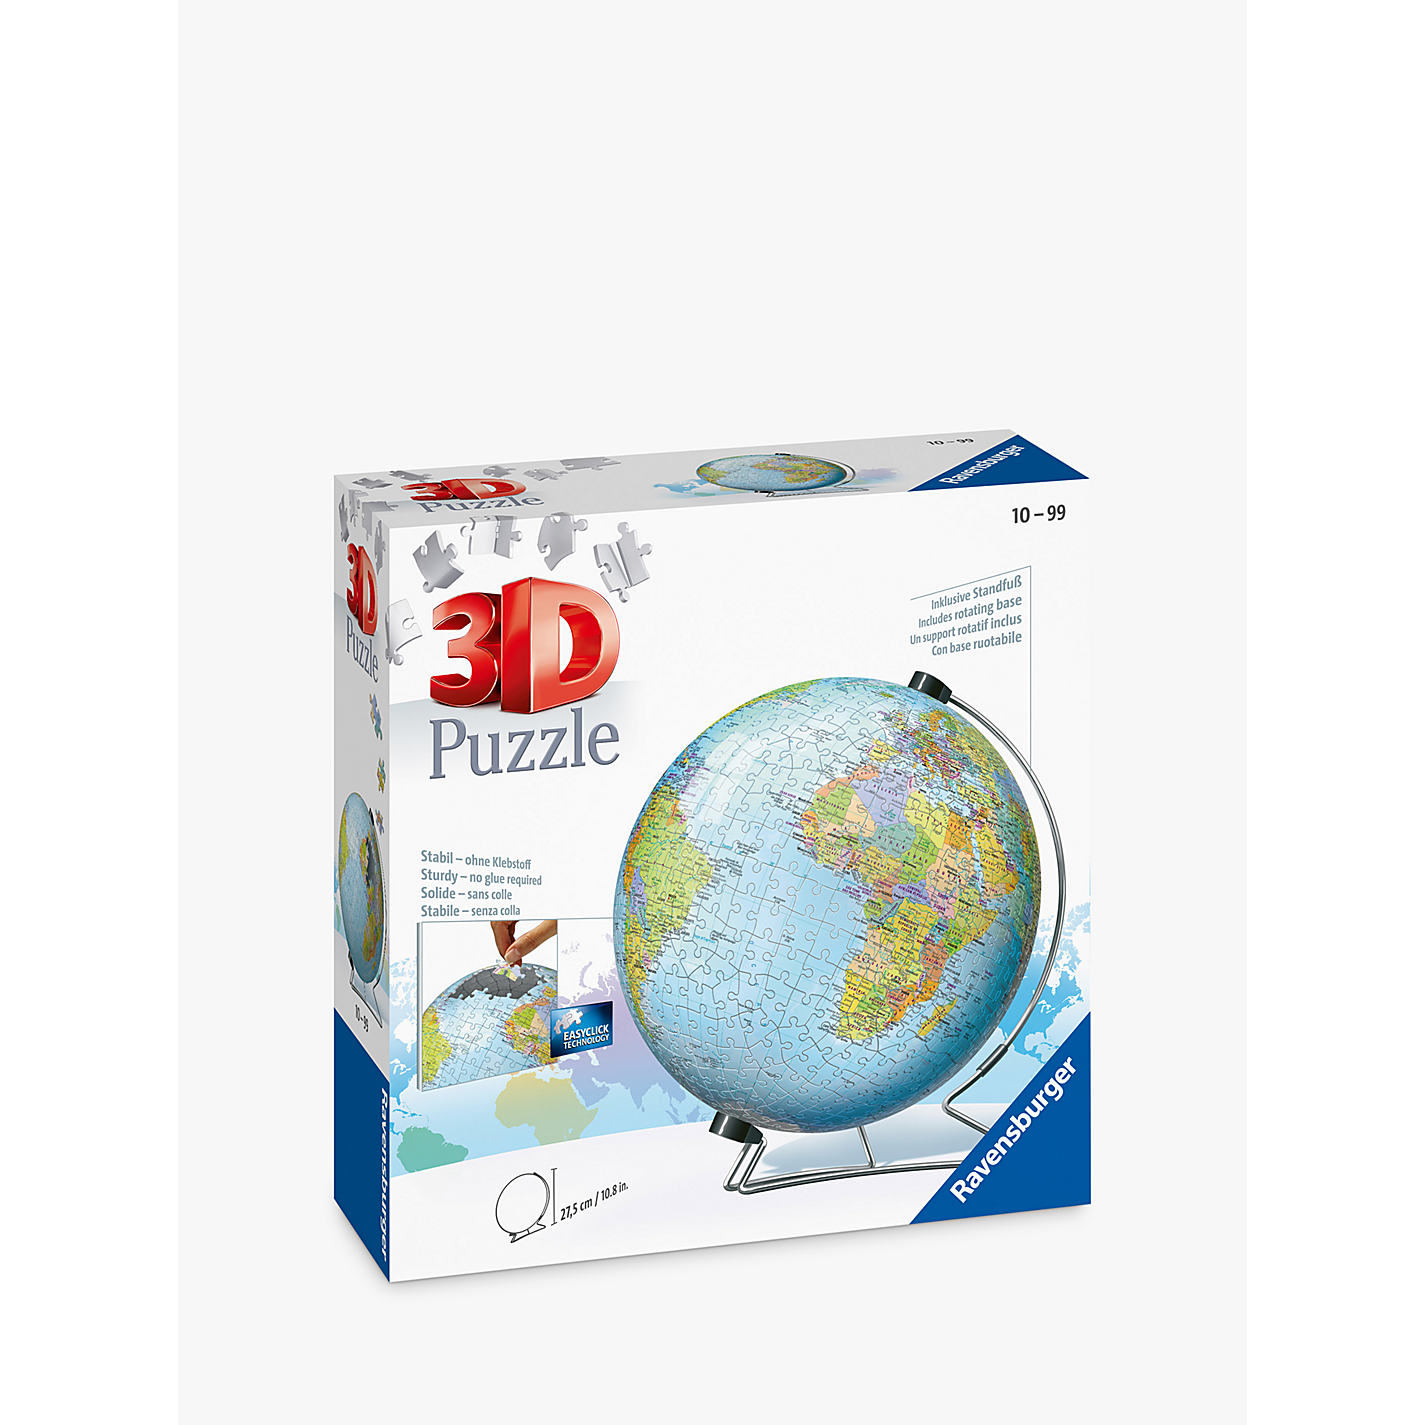 Buy ravensburger the world 3d jigsaw puzzle 540 pieces john lewis buy ravensburger the world 3d jigsaw puzzle 540 pieces online at johnlewis gumiabroncs Images